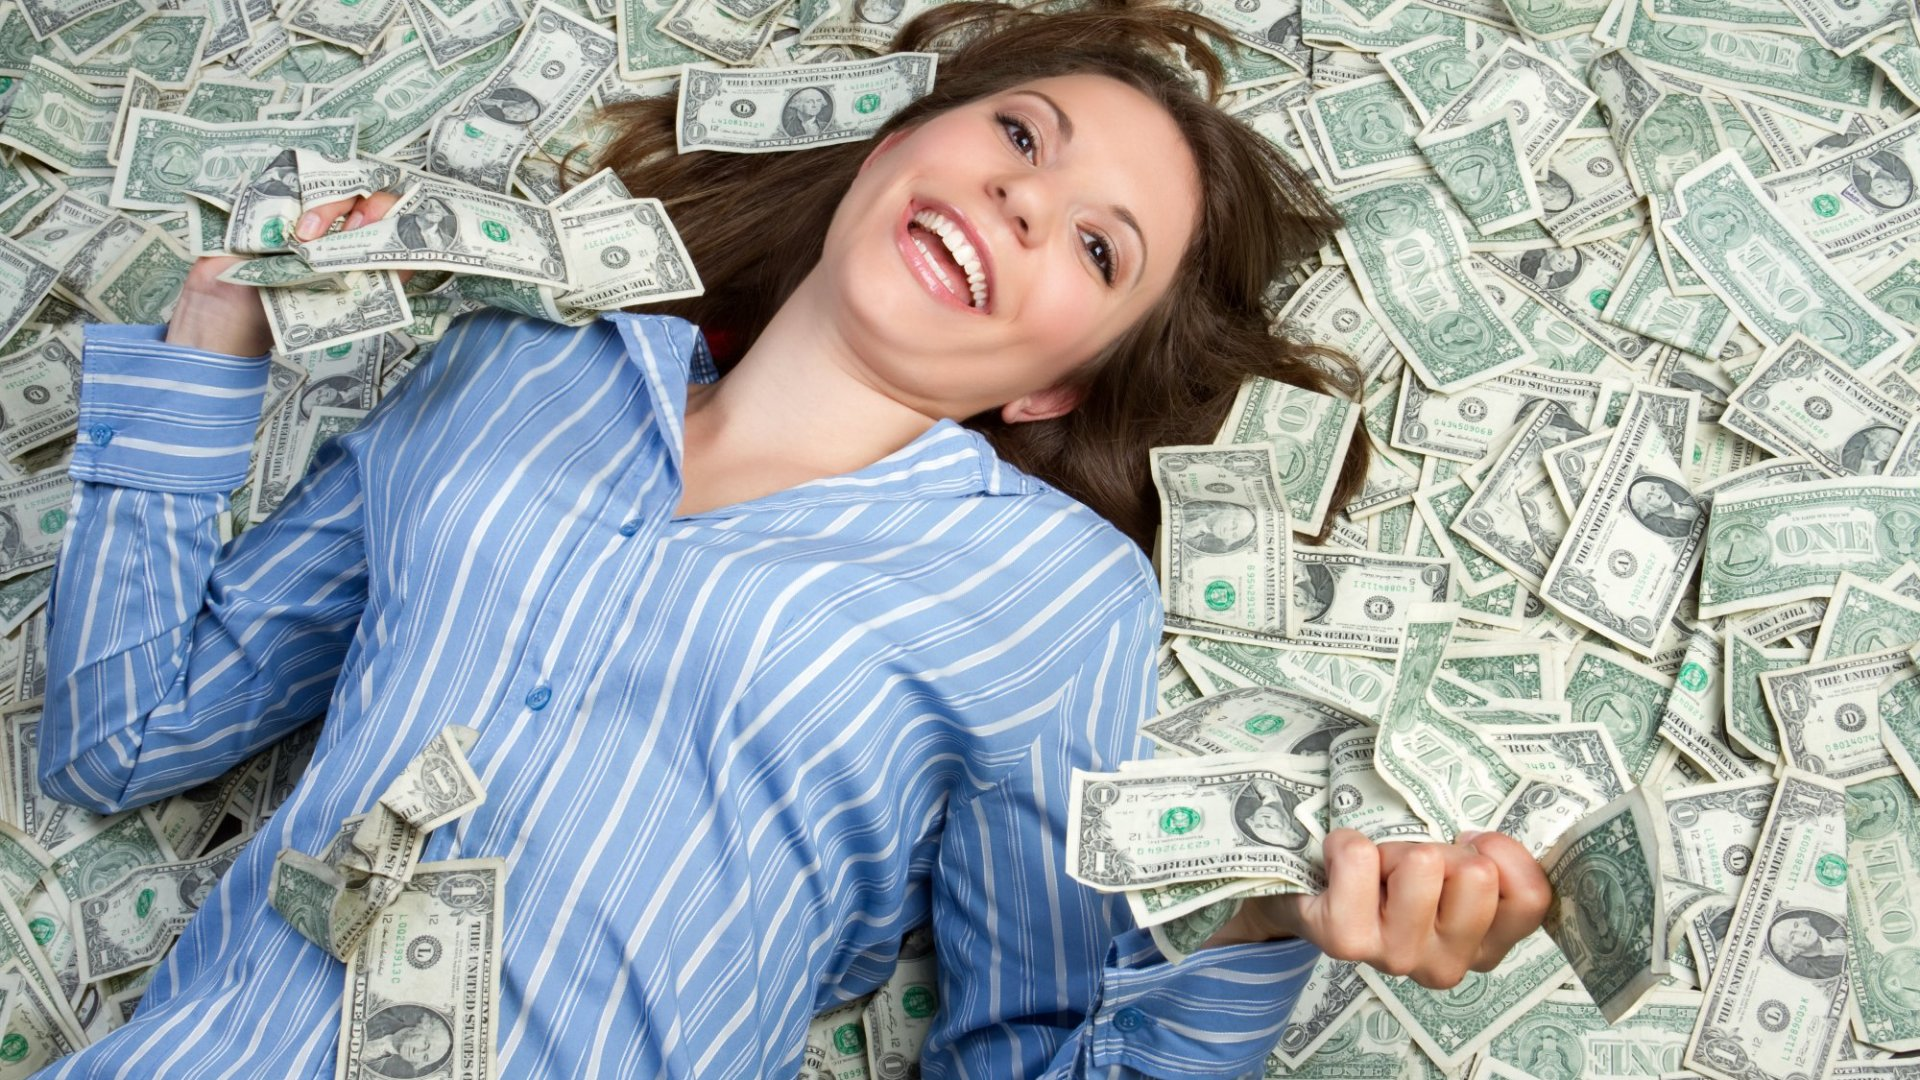 The Exact Amount of Money it Takes to Make a Person Happy Just Got an Update